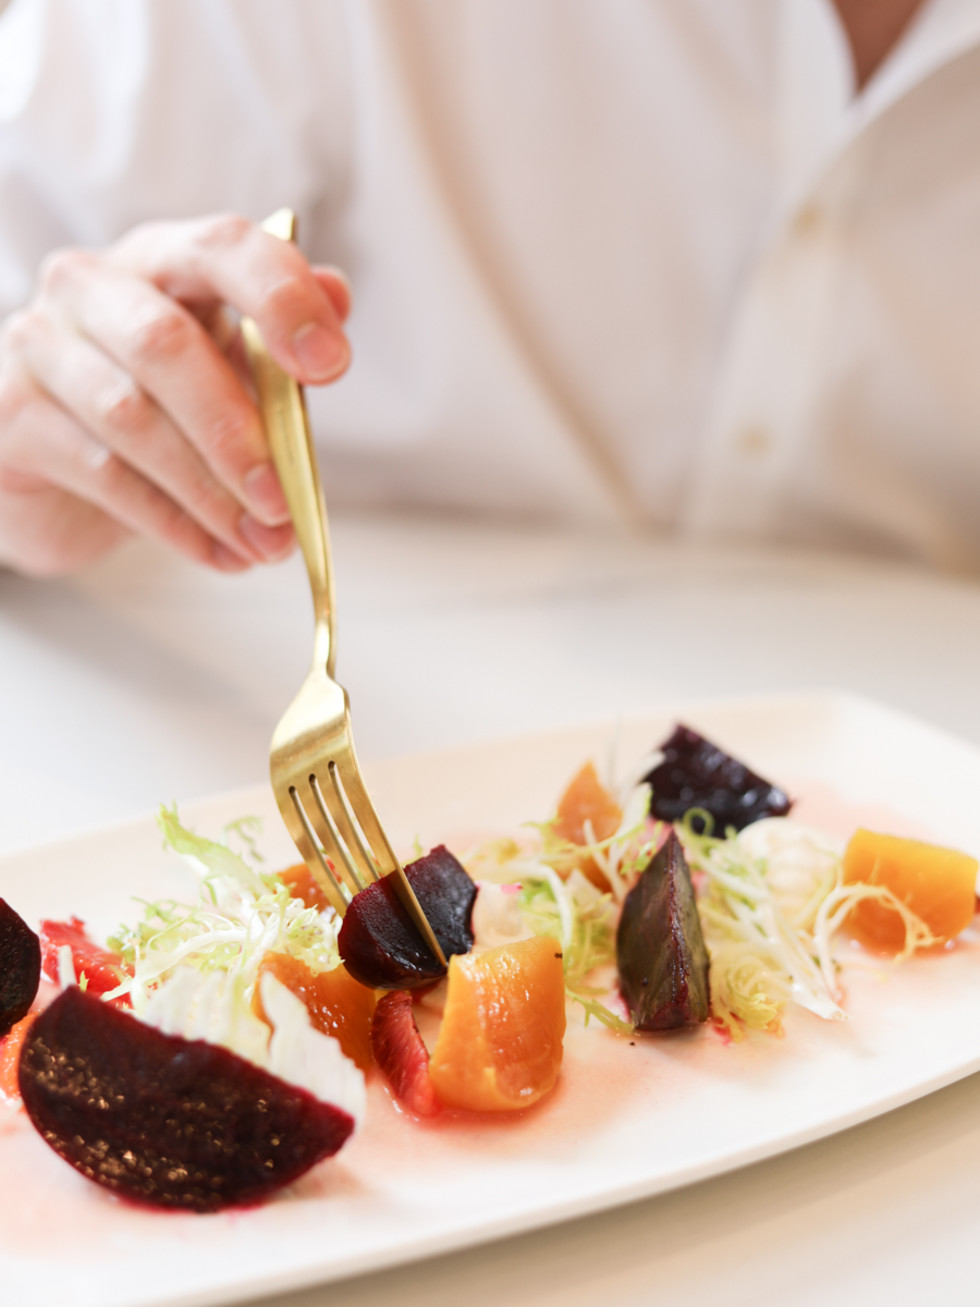 Bisou roasted beets with goat cheese